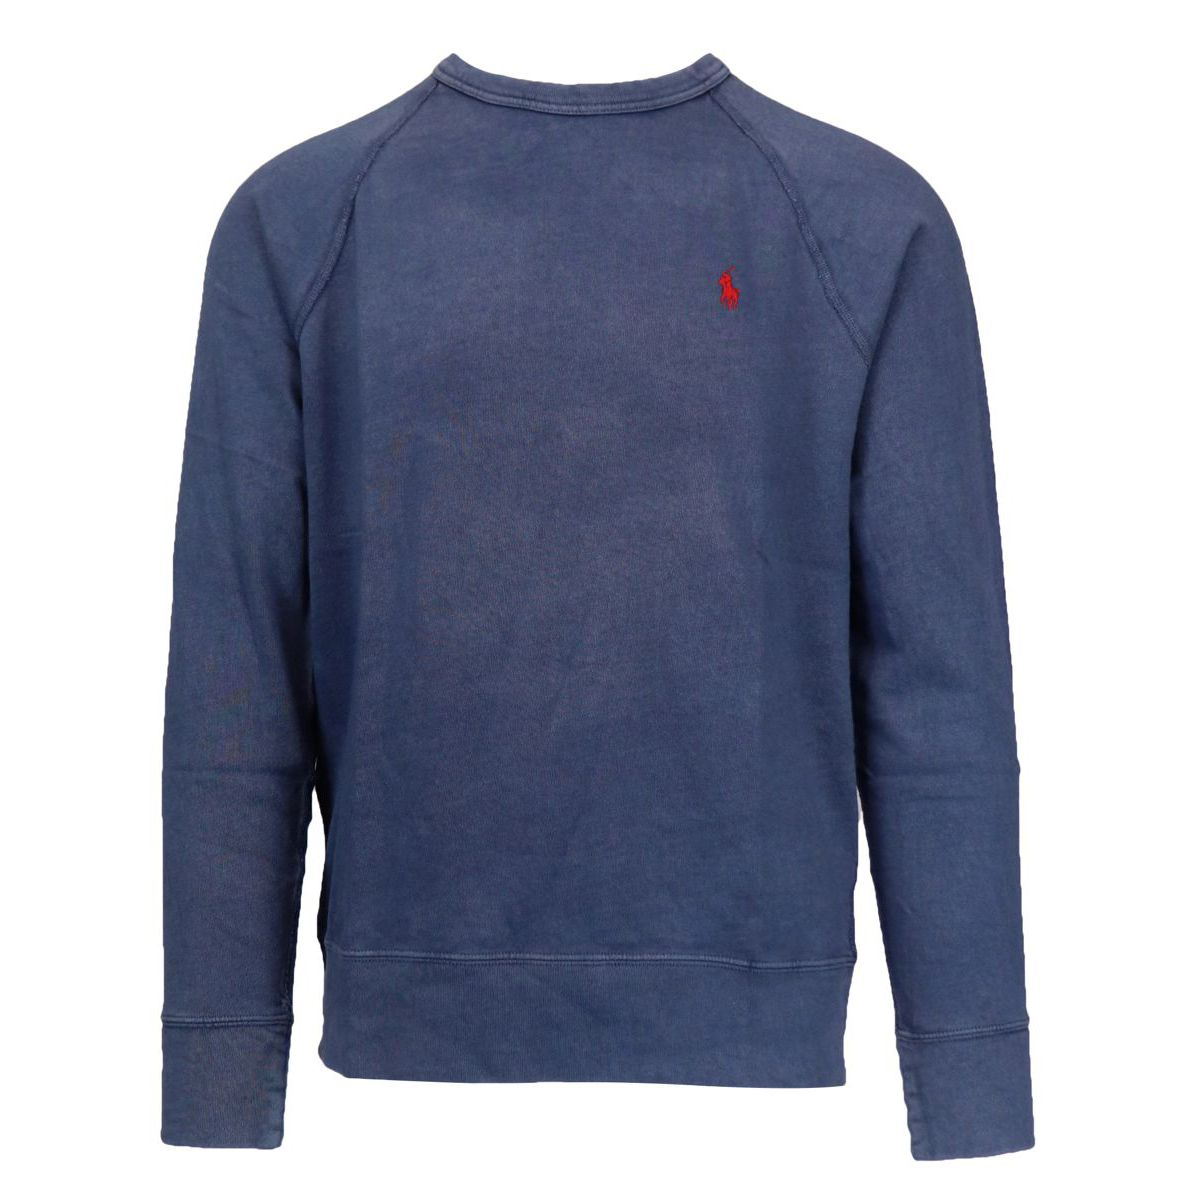 Crewneck cotton sweatshirt with contrasting logo embroidery Navy Polo Ralph Lauren